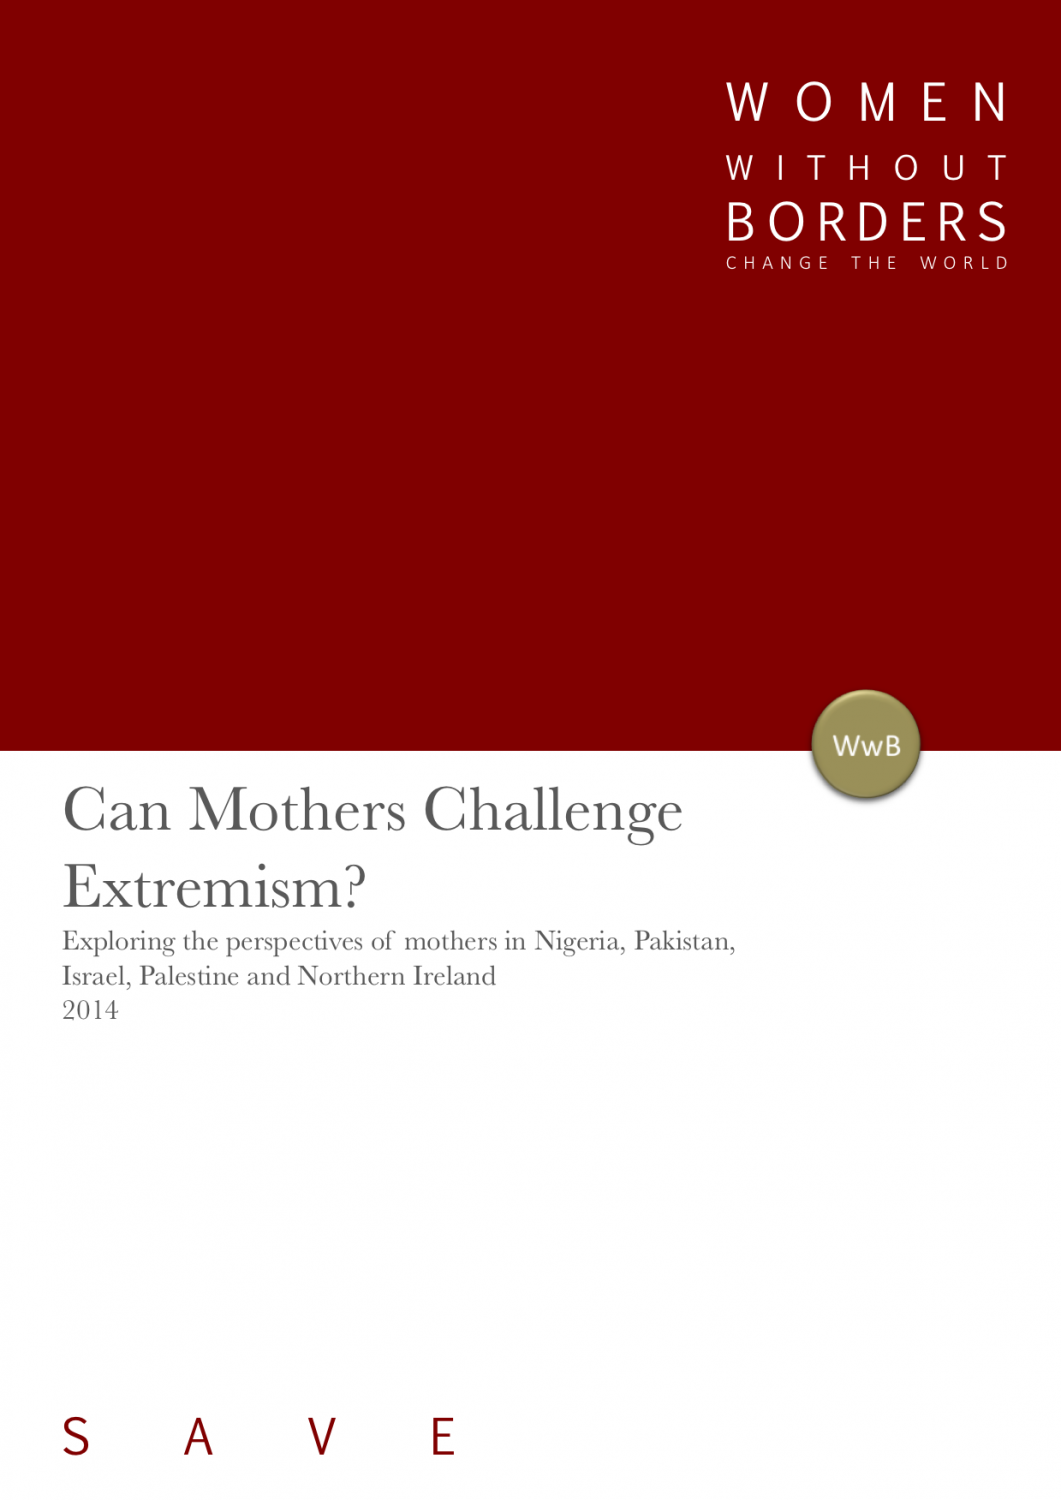 Can Mothers Challenge Extremism?